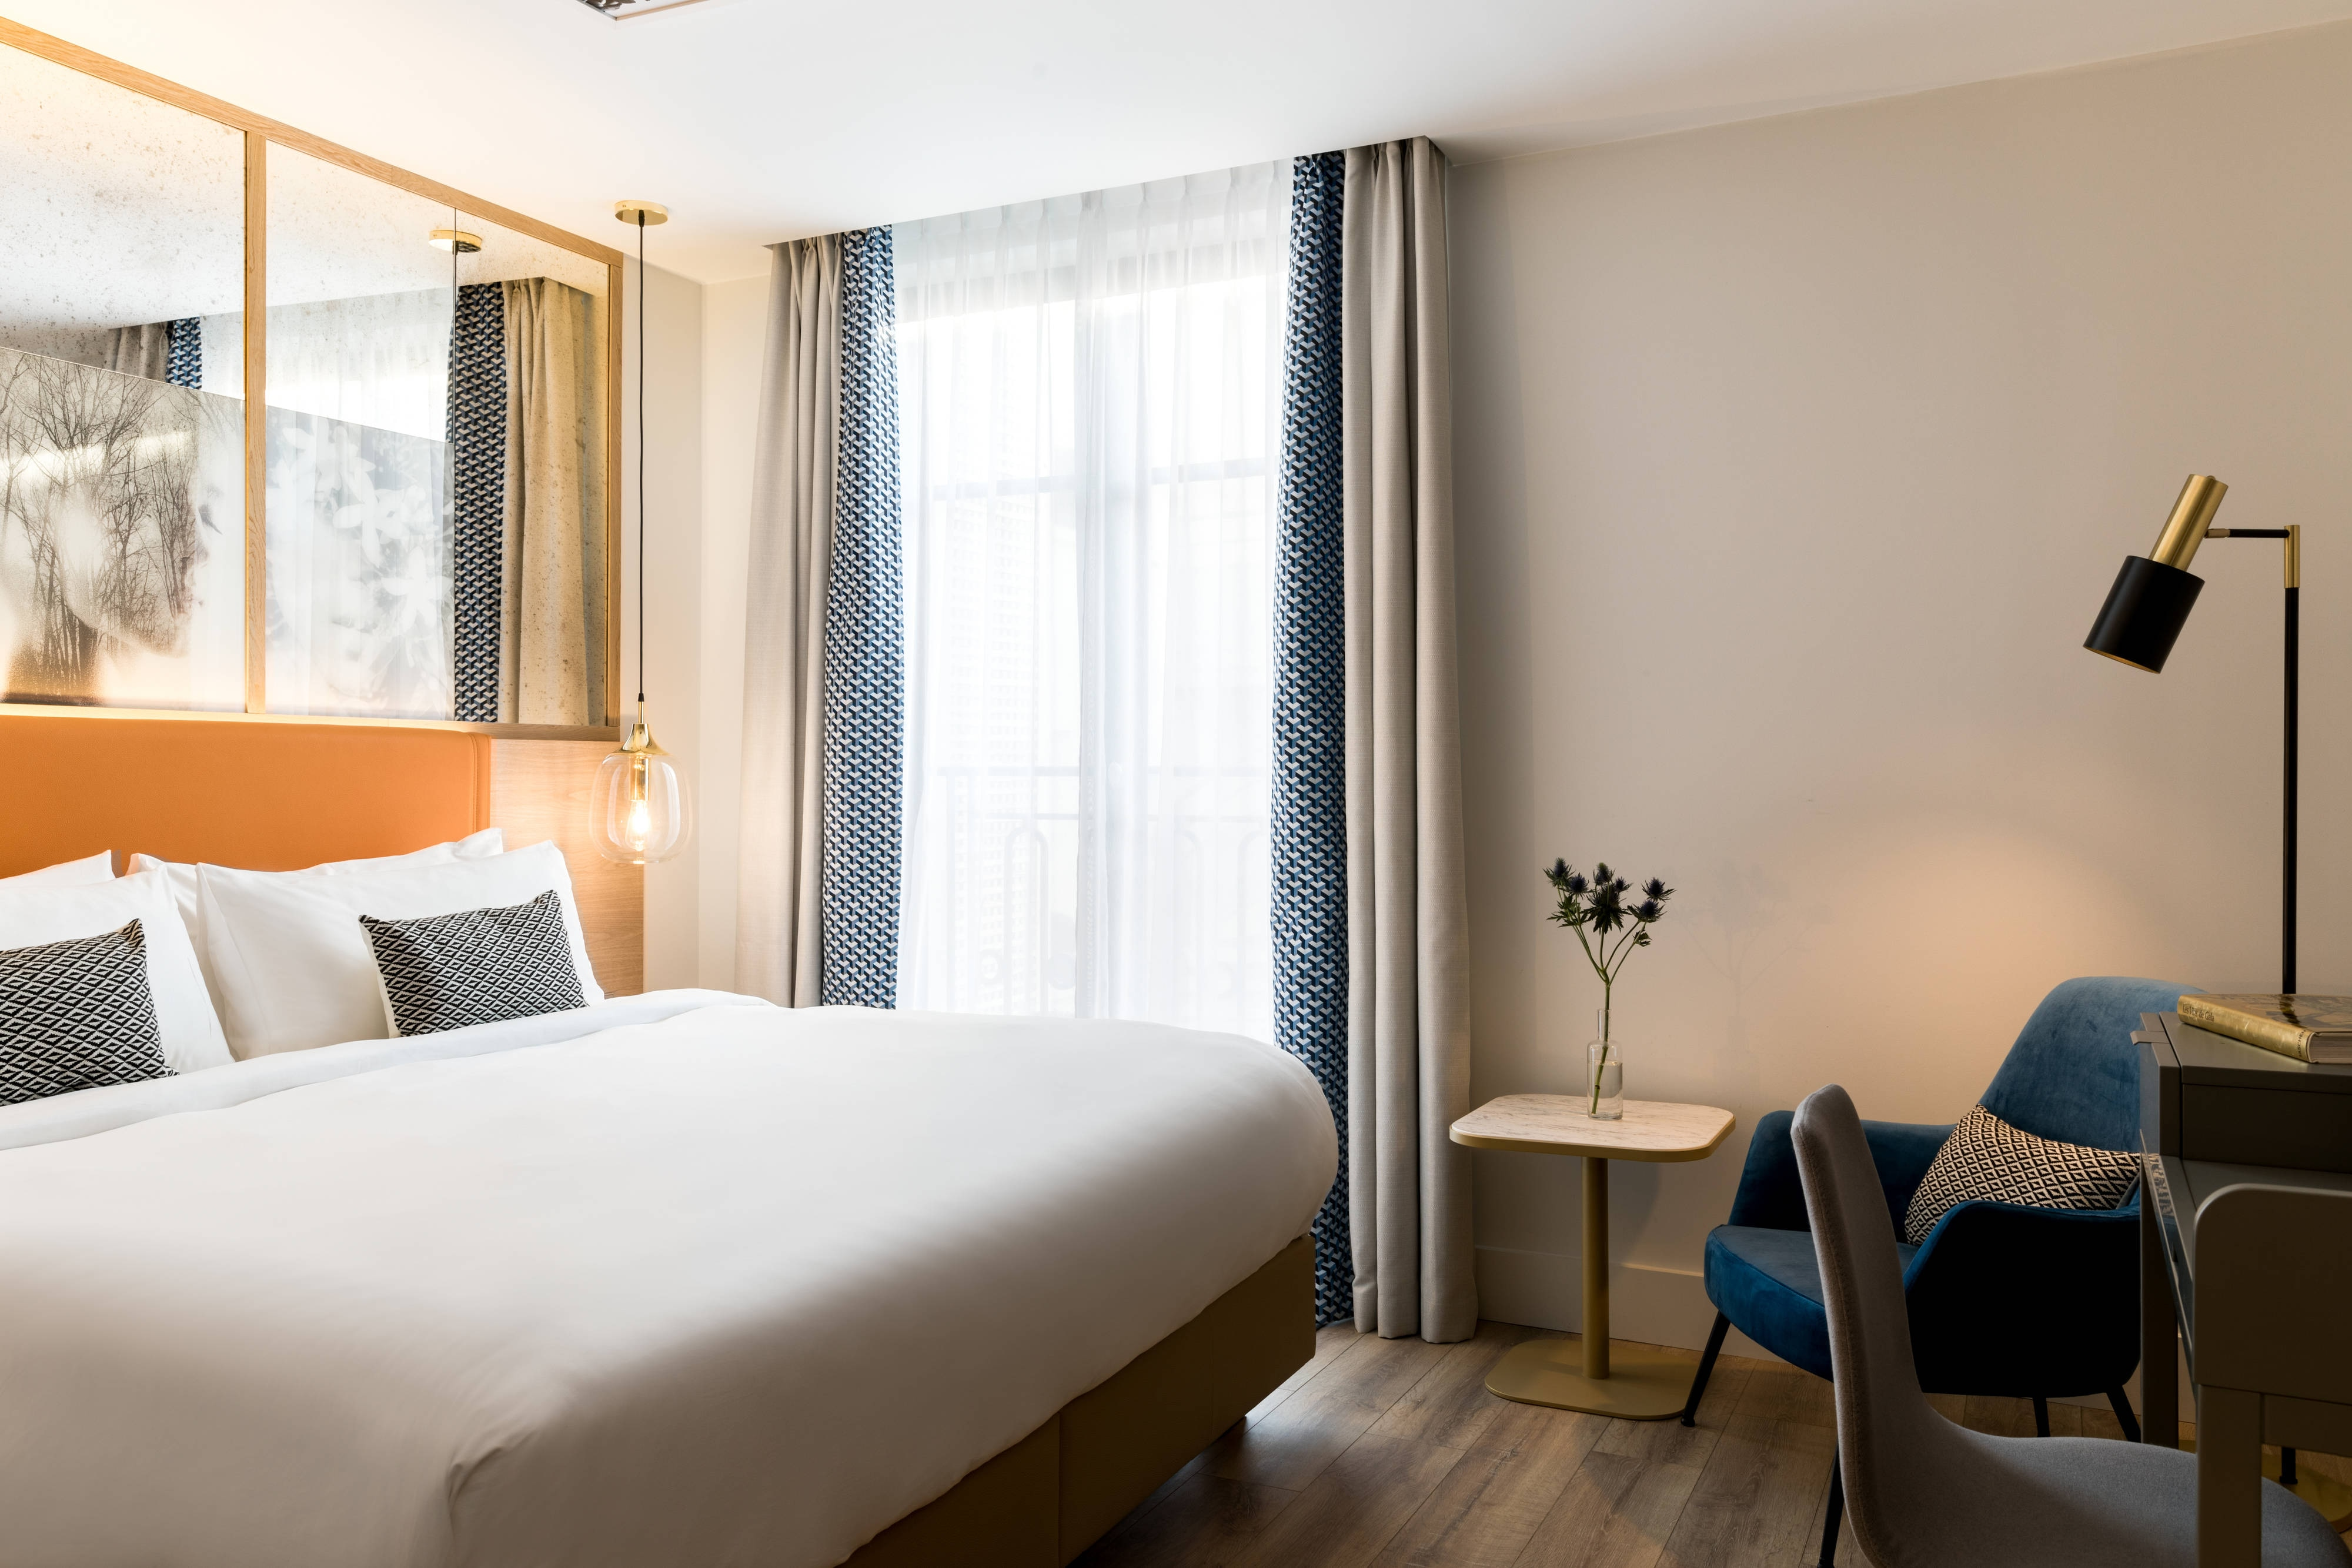 Paris France Hotels 5 Star Rooms